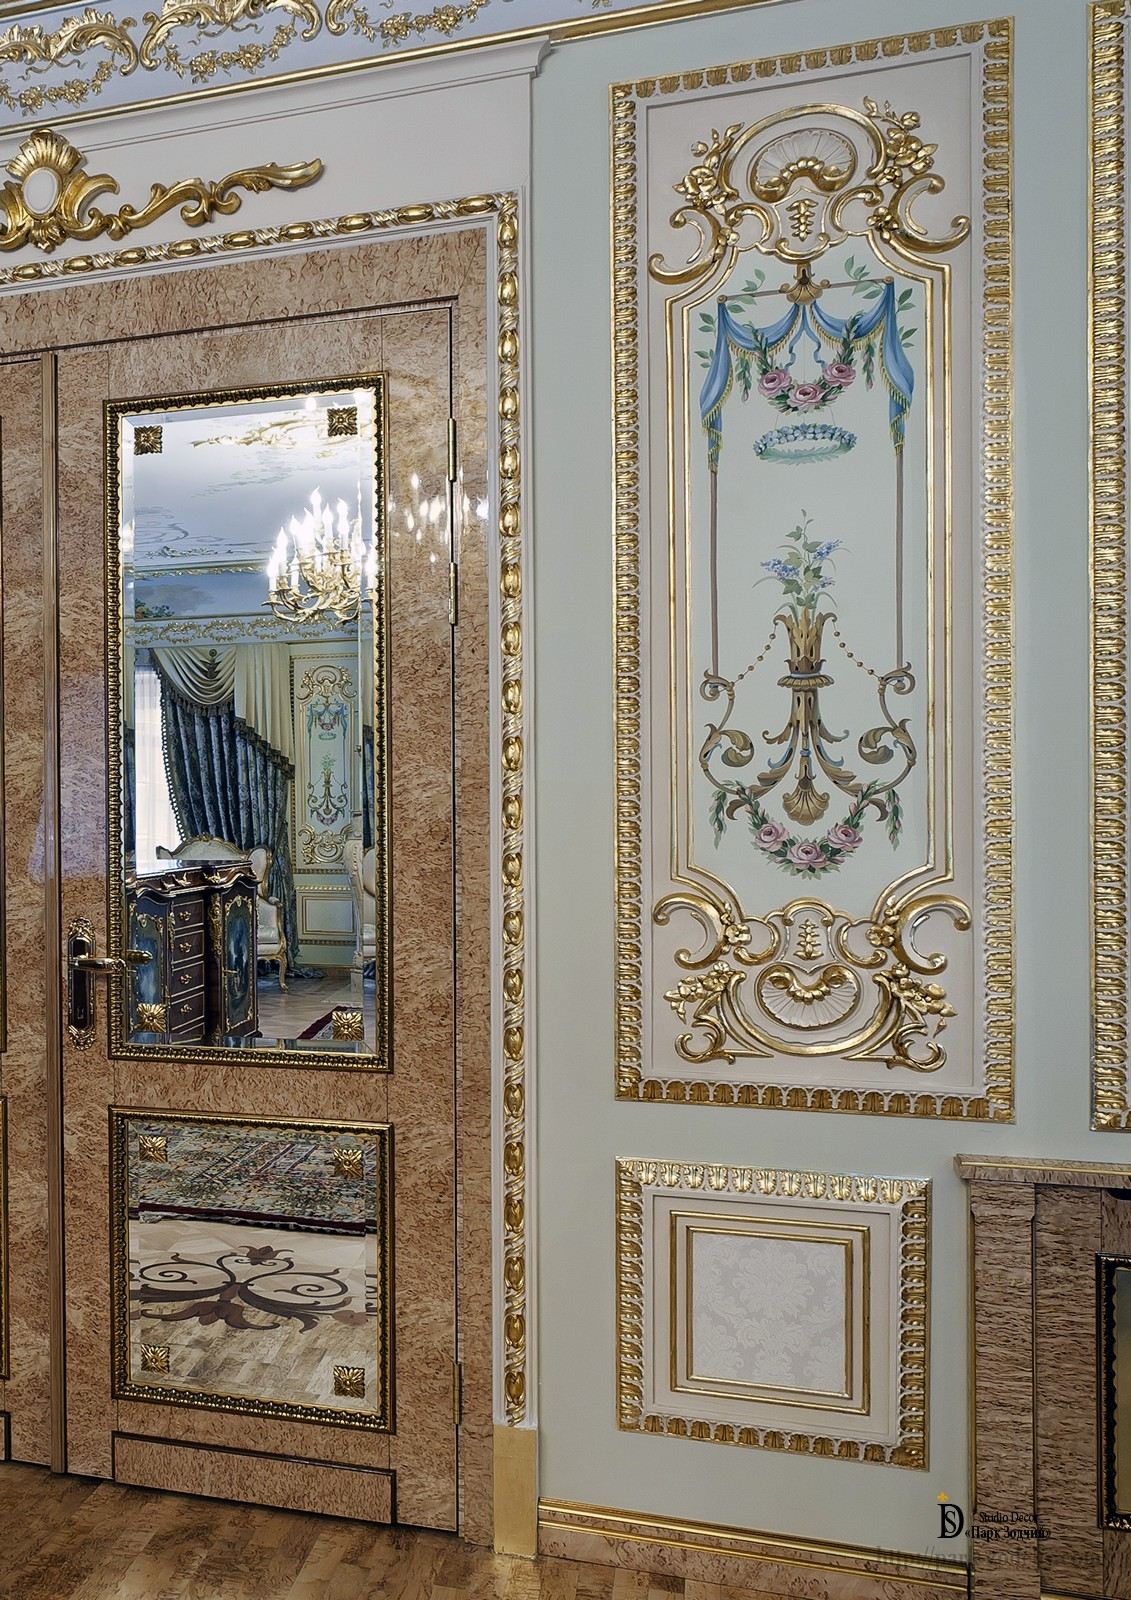 The gilding of the frames of plaster moldings